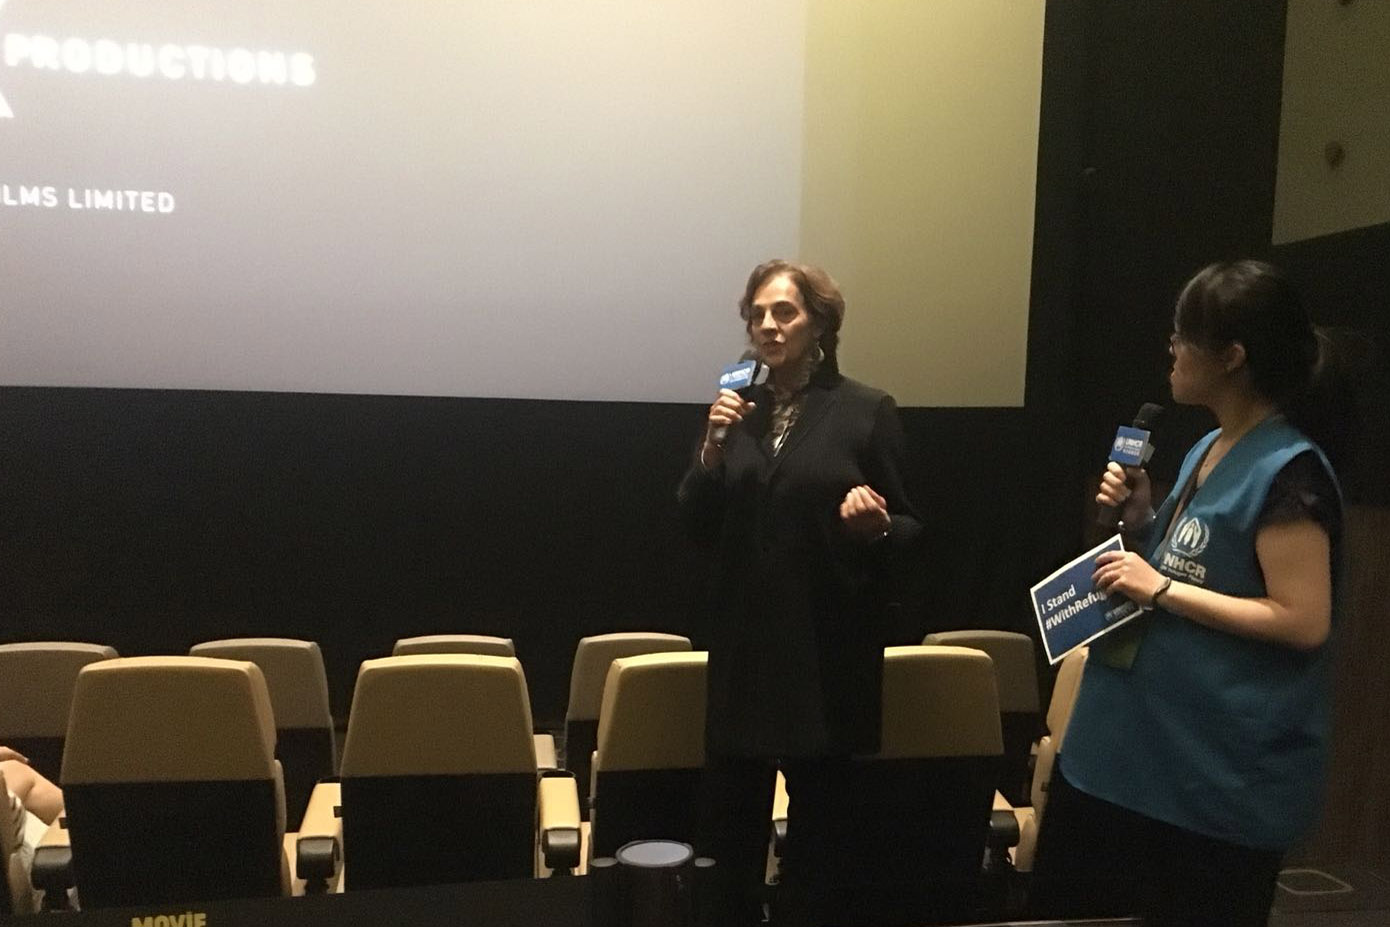 Director Ros Horin shared behind-the-scenes stories at the Q&A session after the closing screening.